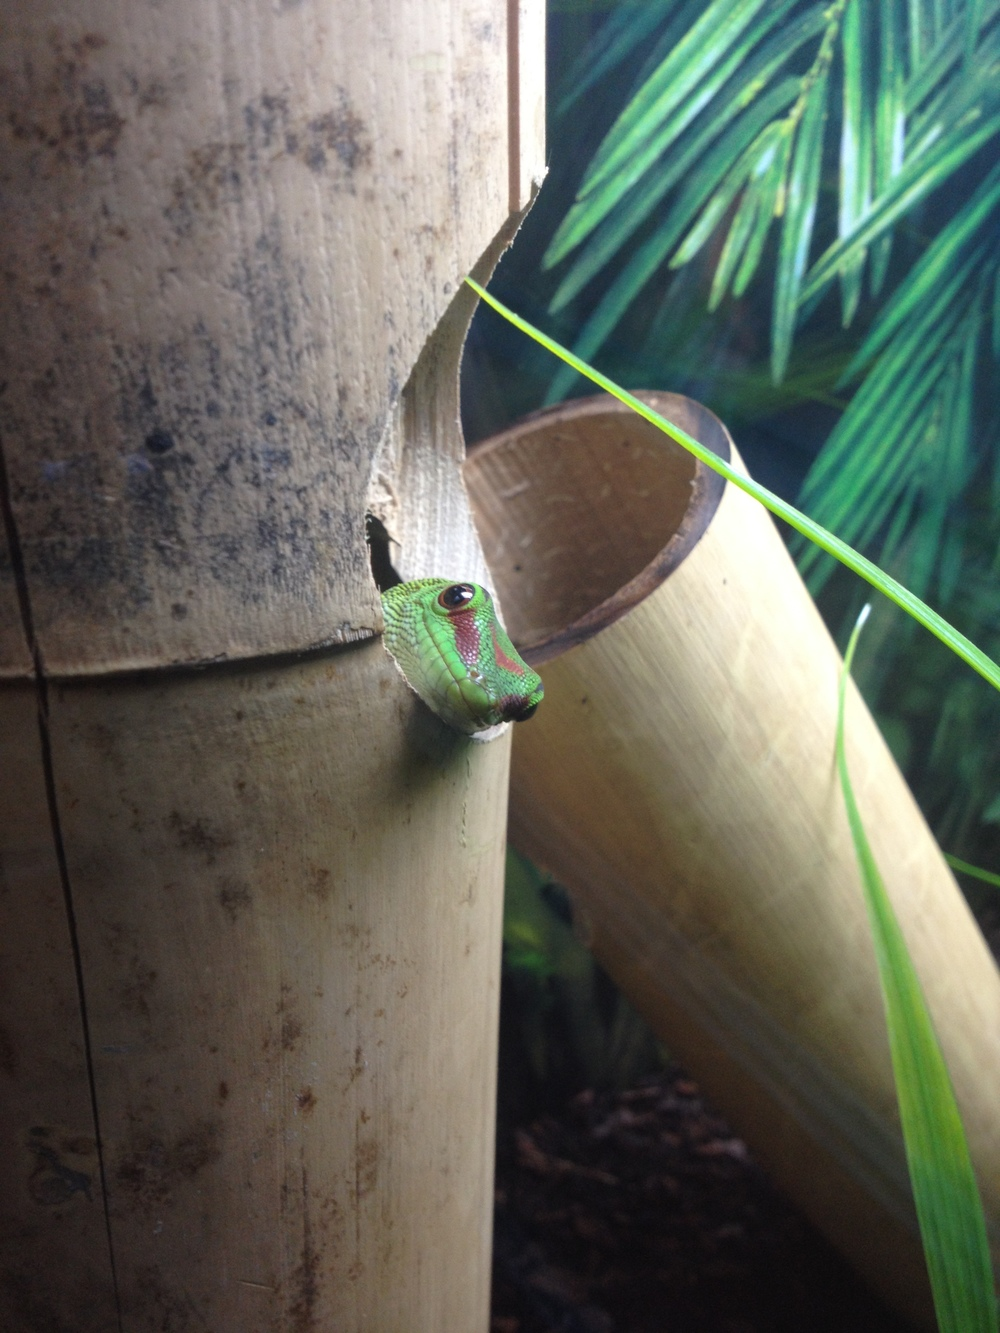 Giant Madagascan Day Gecko (14).JPG